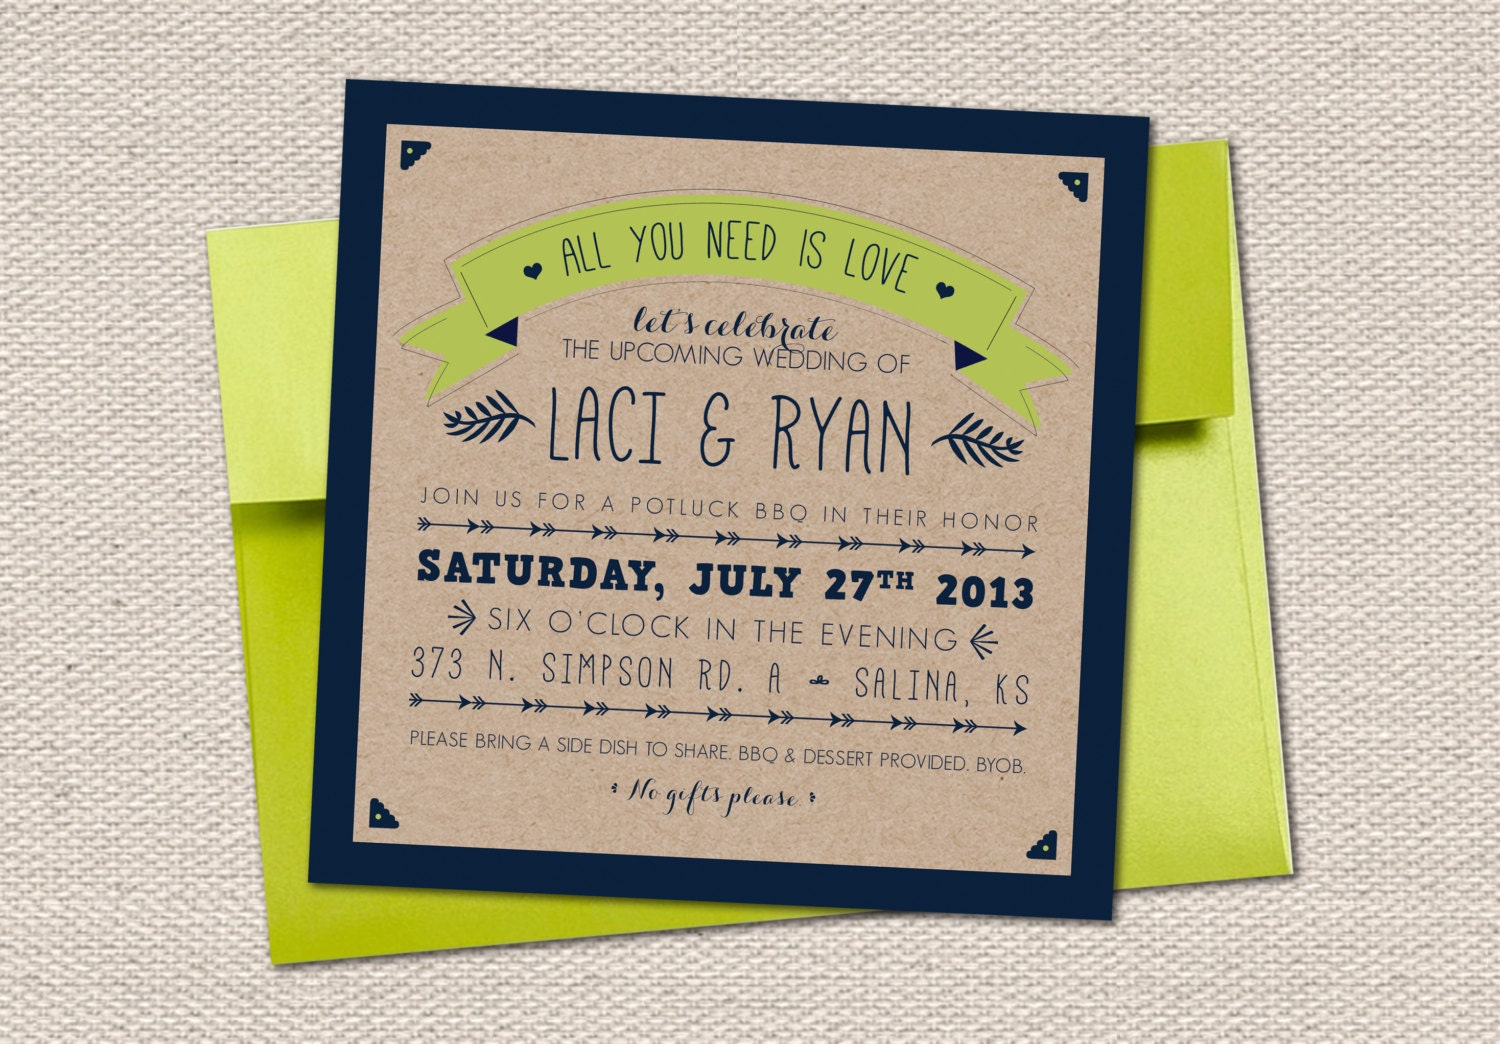 All You Need Is Love Wedding Invitations: All You Need Is Love Couple Shower Invitation // Kraft Paper